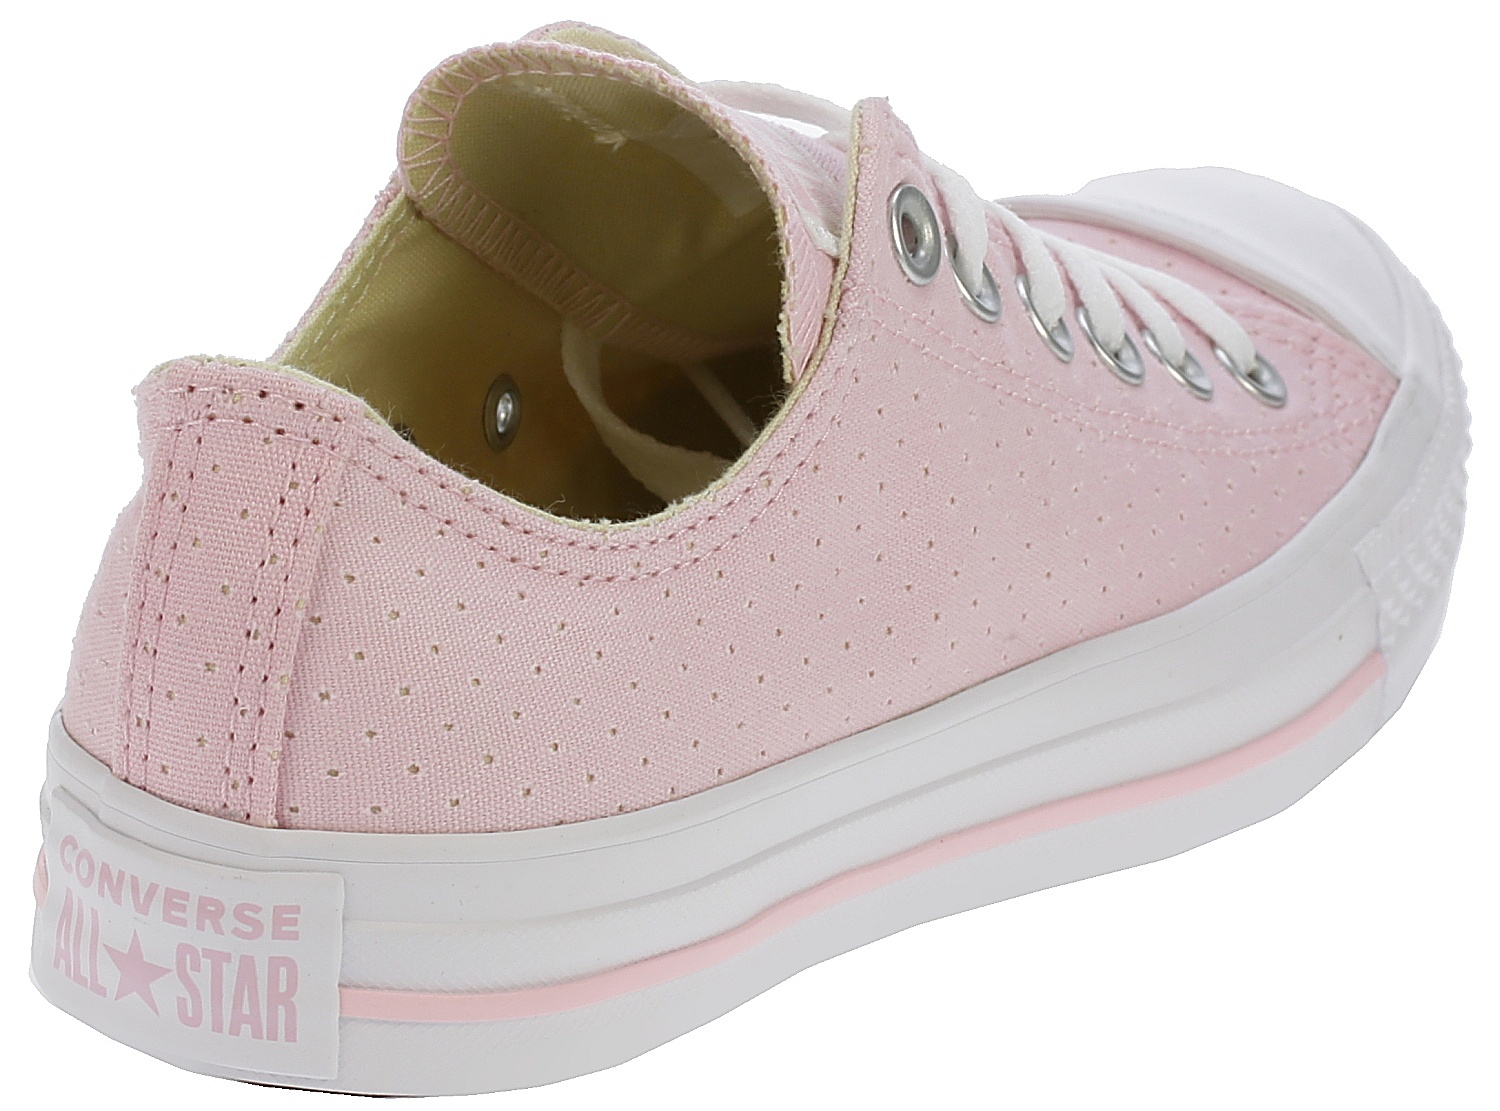 95944ba1910c ... shoes Converse Chuck Taylor All Star Sneakers OX - 560680 Cherry Blossom White   ...